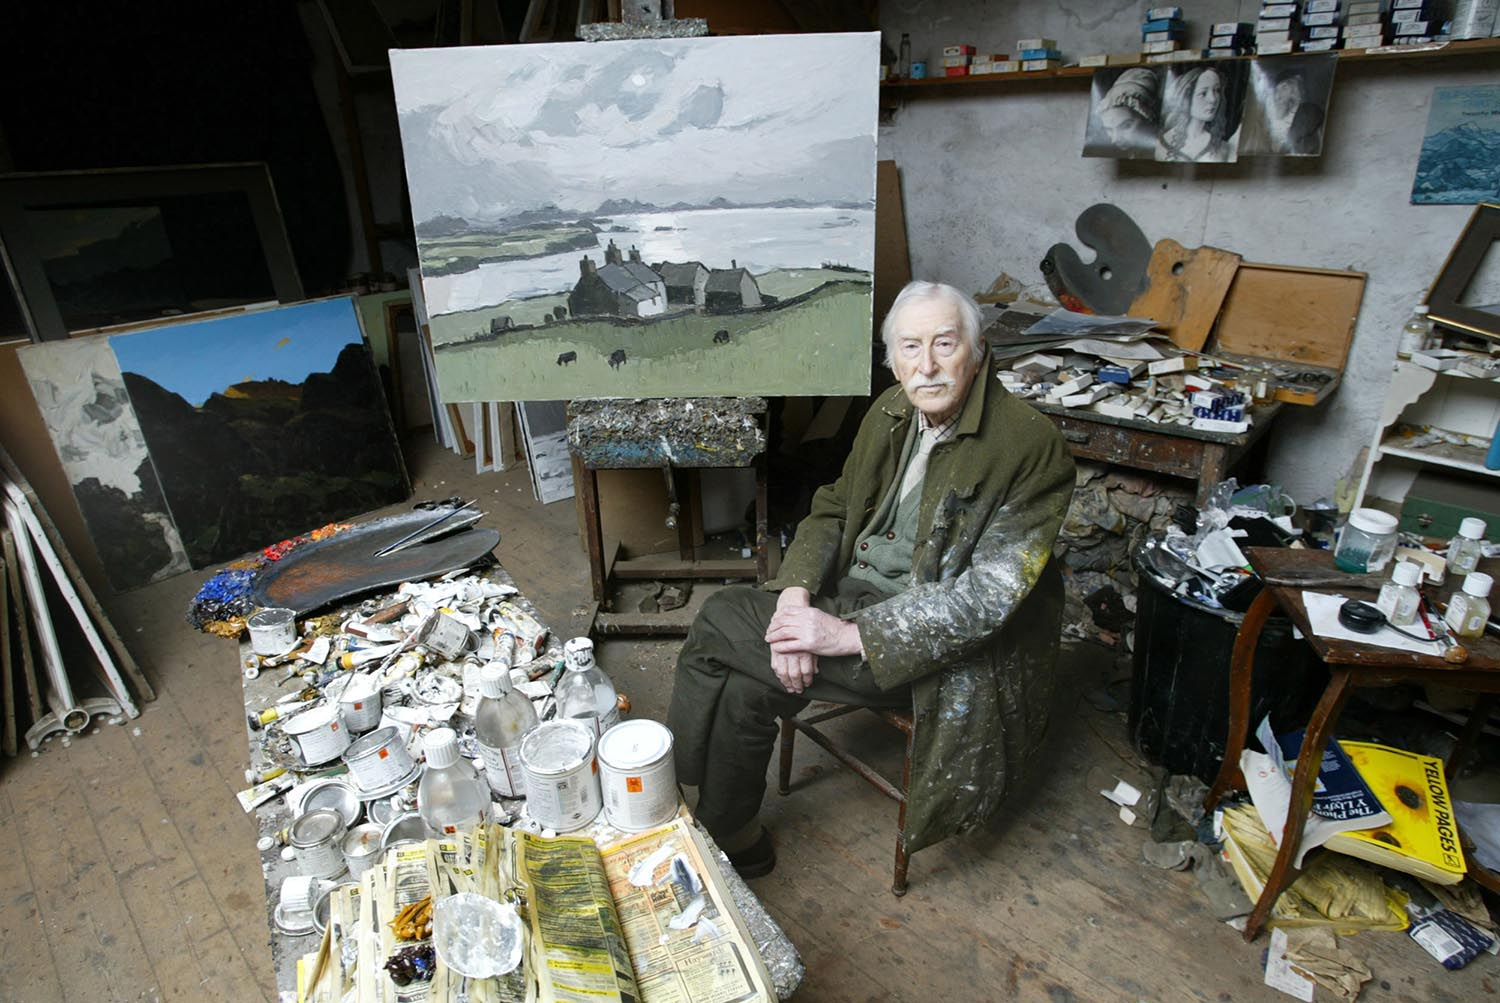 Sir Kyffin Williams for The Sunday Times